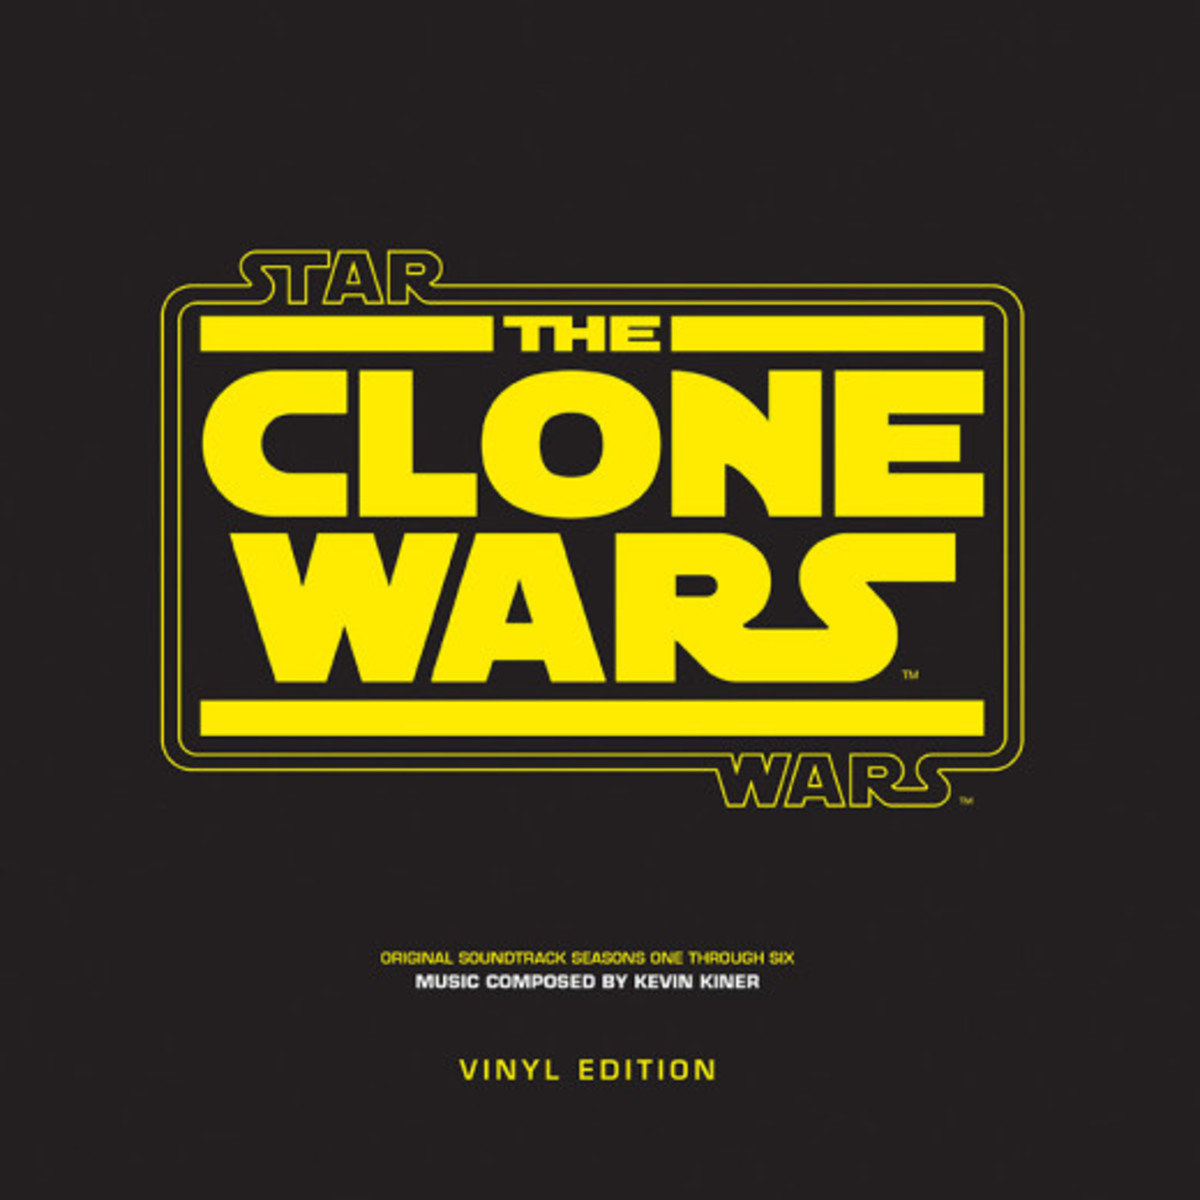 "Star Wars ""The Clone Wars"" Walt Disney Records D002113101 12"" LP Vinyl Record, US Pressing (2014) Music Composed by Kevin Kiner"